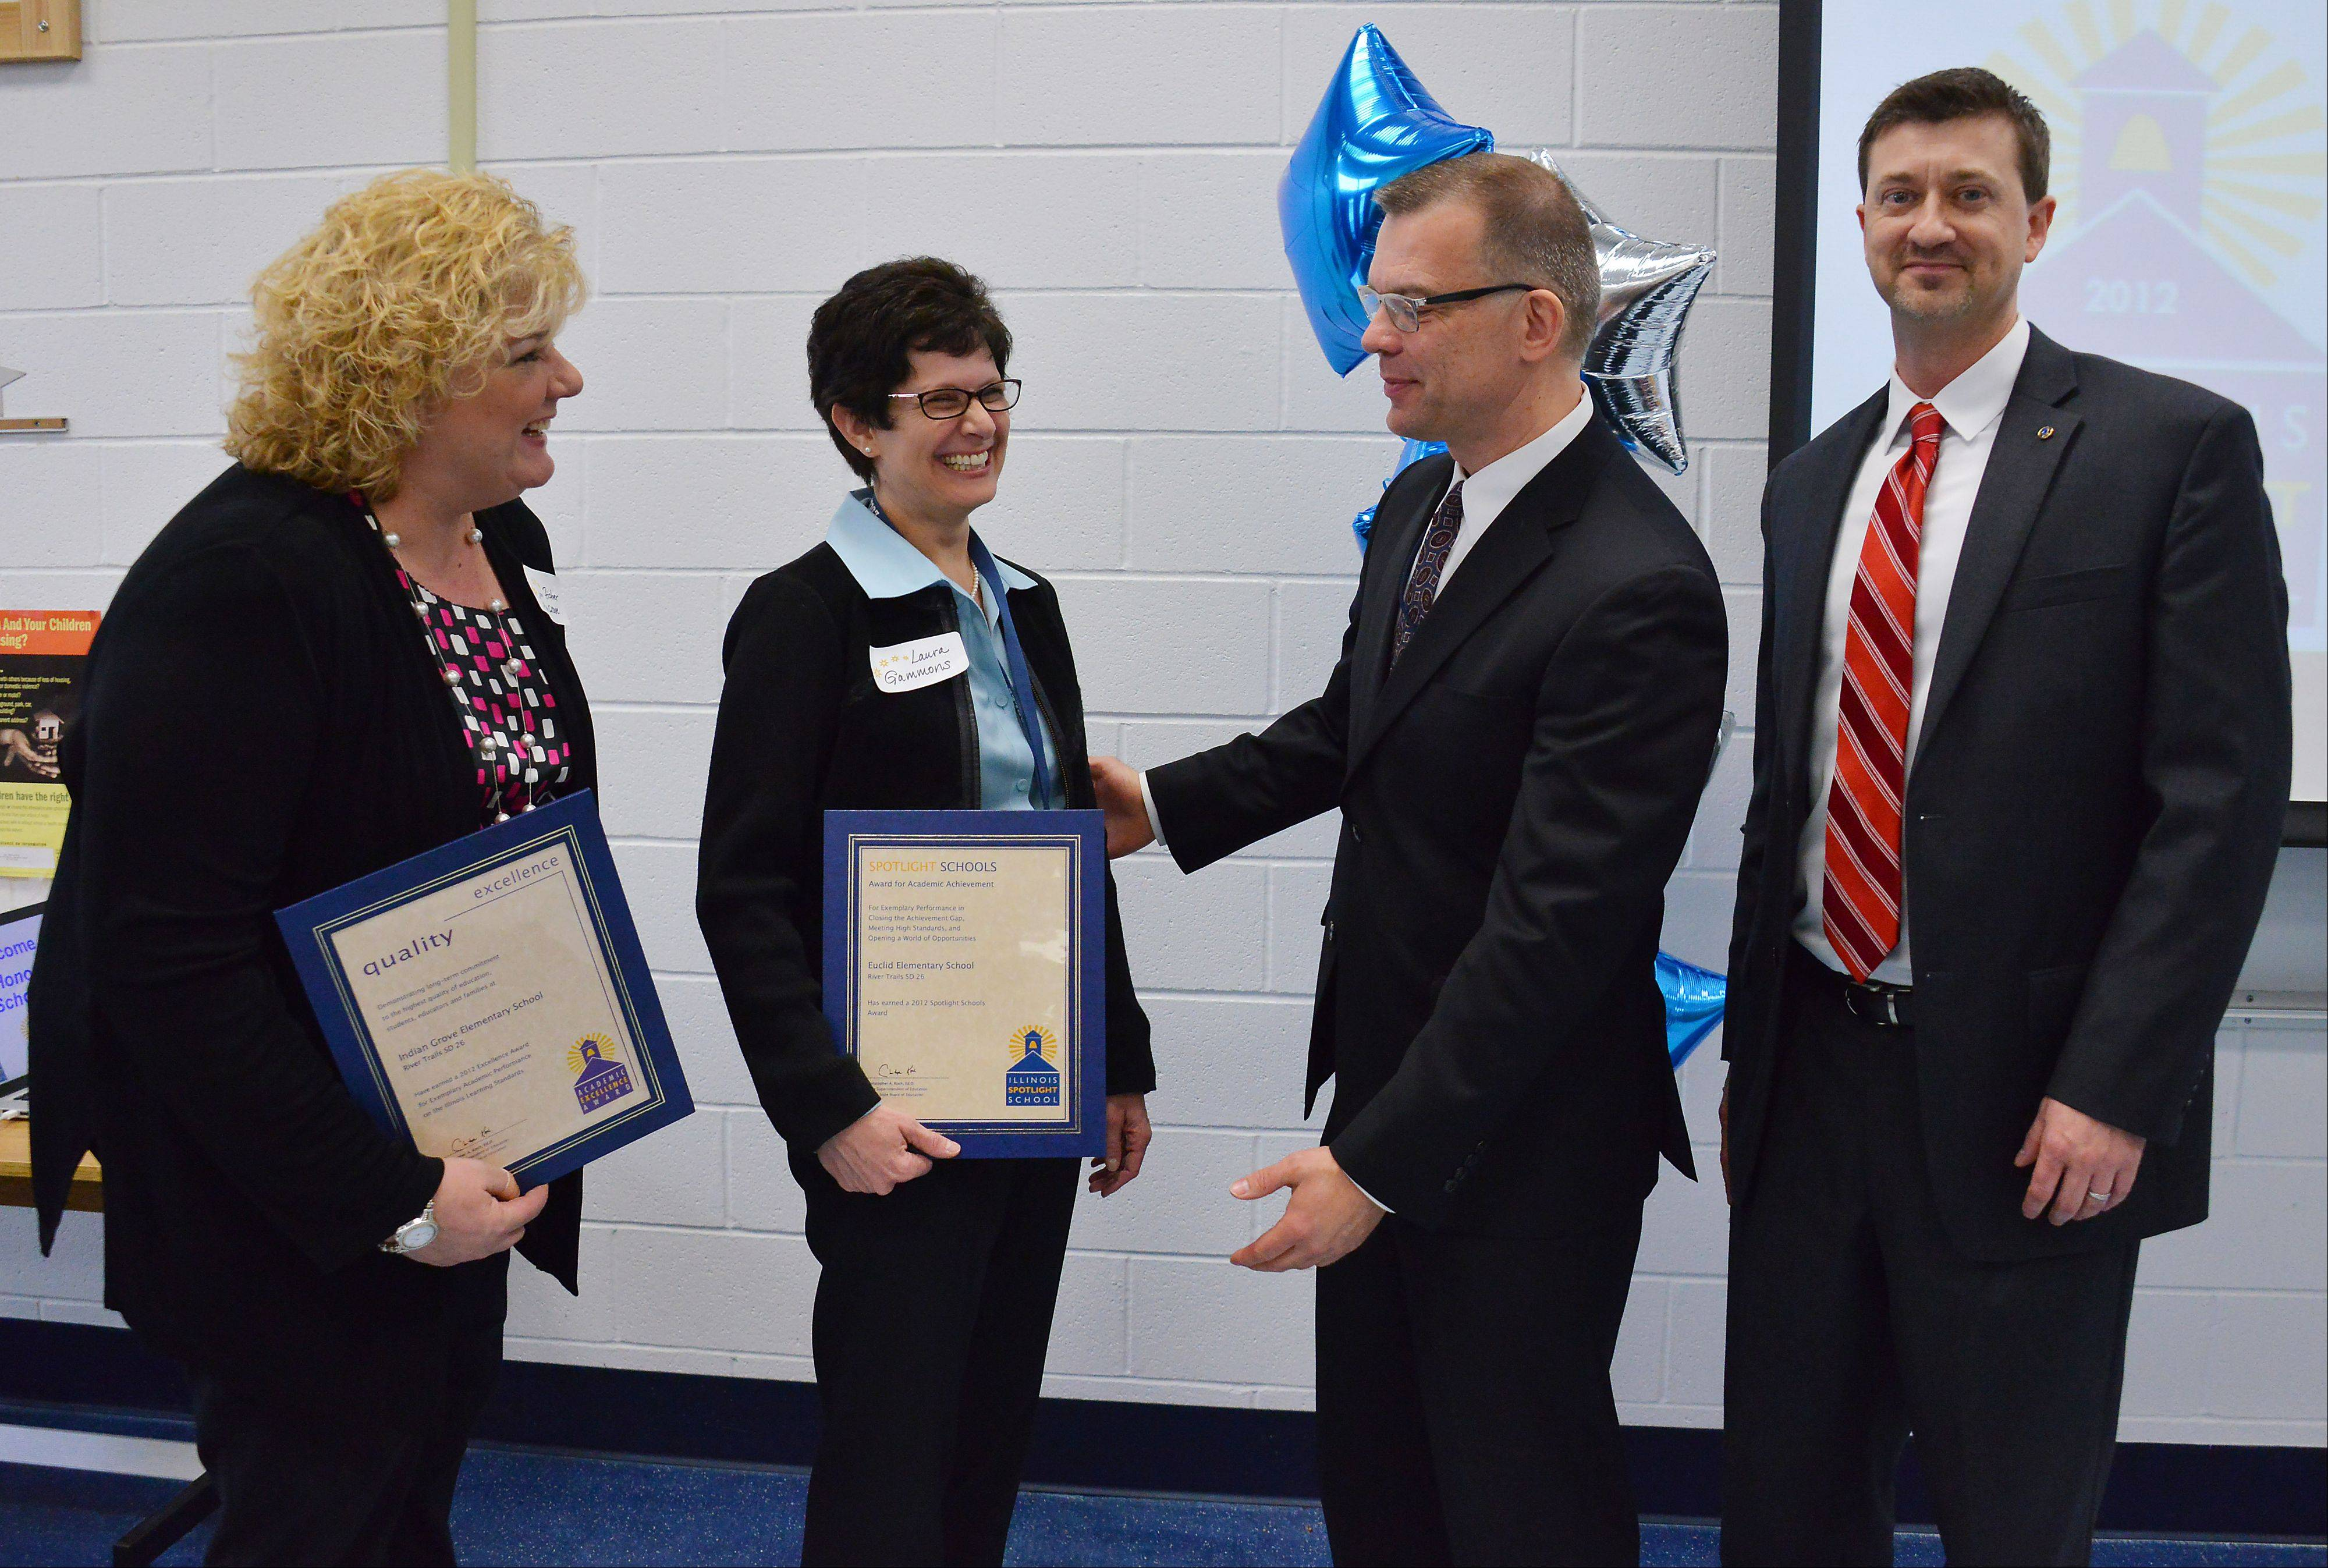 Illinois State Superintendent of Education Christopher Koch awards the Academic Excellence Award on Monday to River Trails Elementary District 26 schools Euclid Elementary School, represented by Lynn Fisher, and Indian Grove Elementary School, represented by Laura Gammons and Dane Delli. The awards were passed out at the John Jay Elementary School in Mount Prospect.